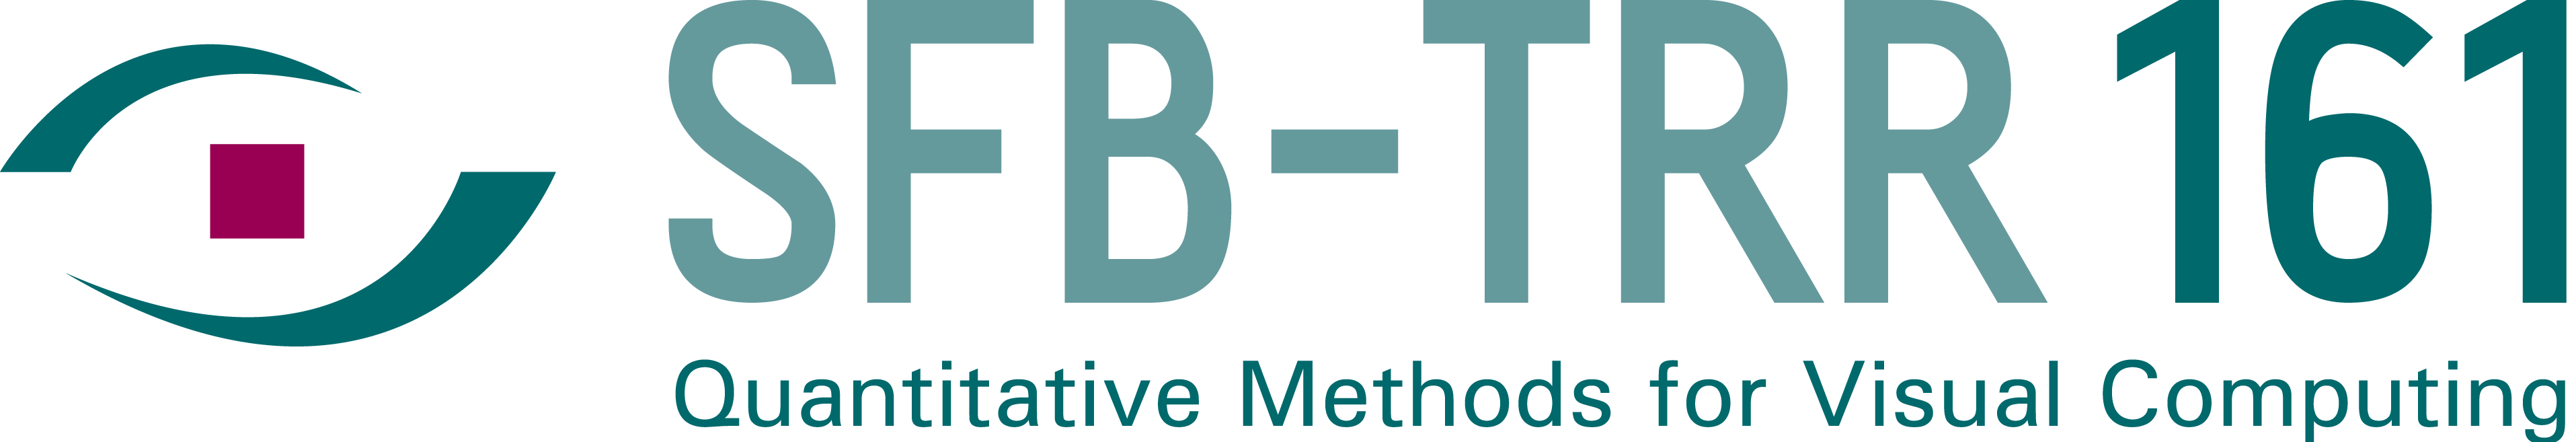 SFB-TRR 161: Collaborative Research Center --- Quantitative Methods for Visual Computing